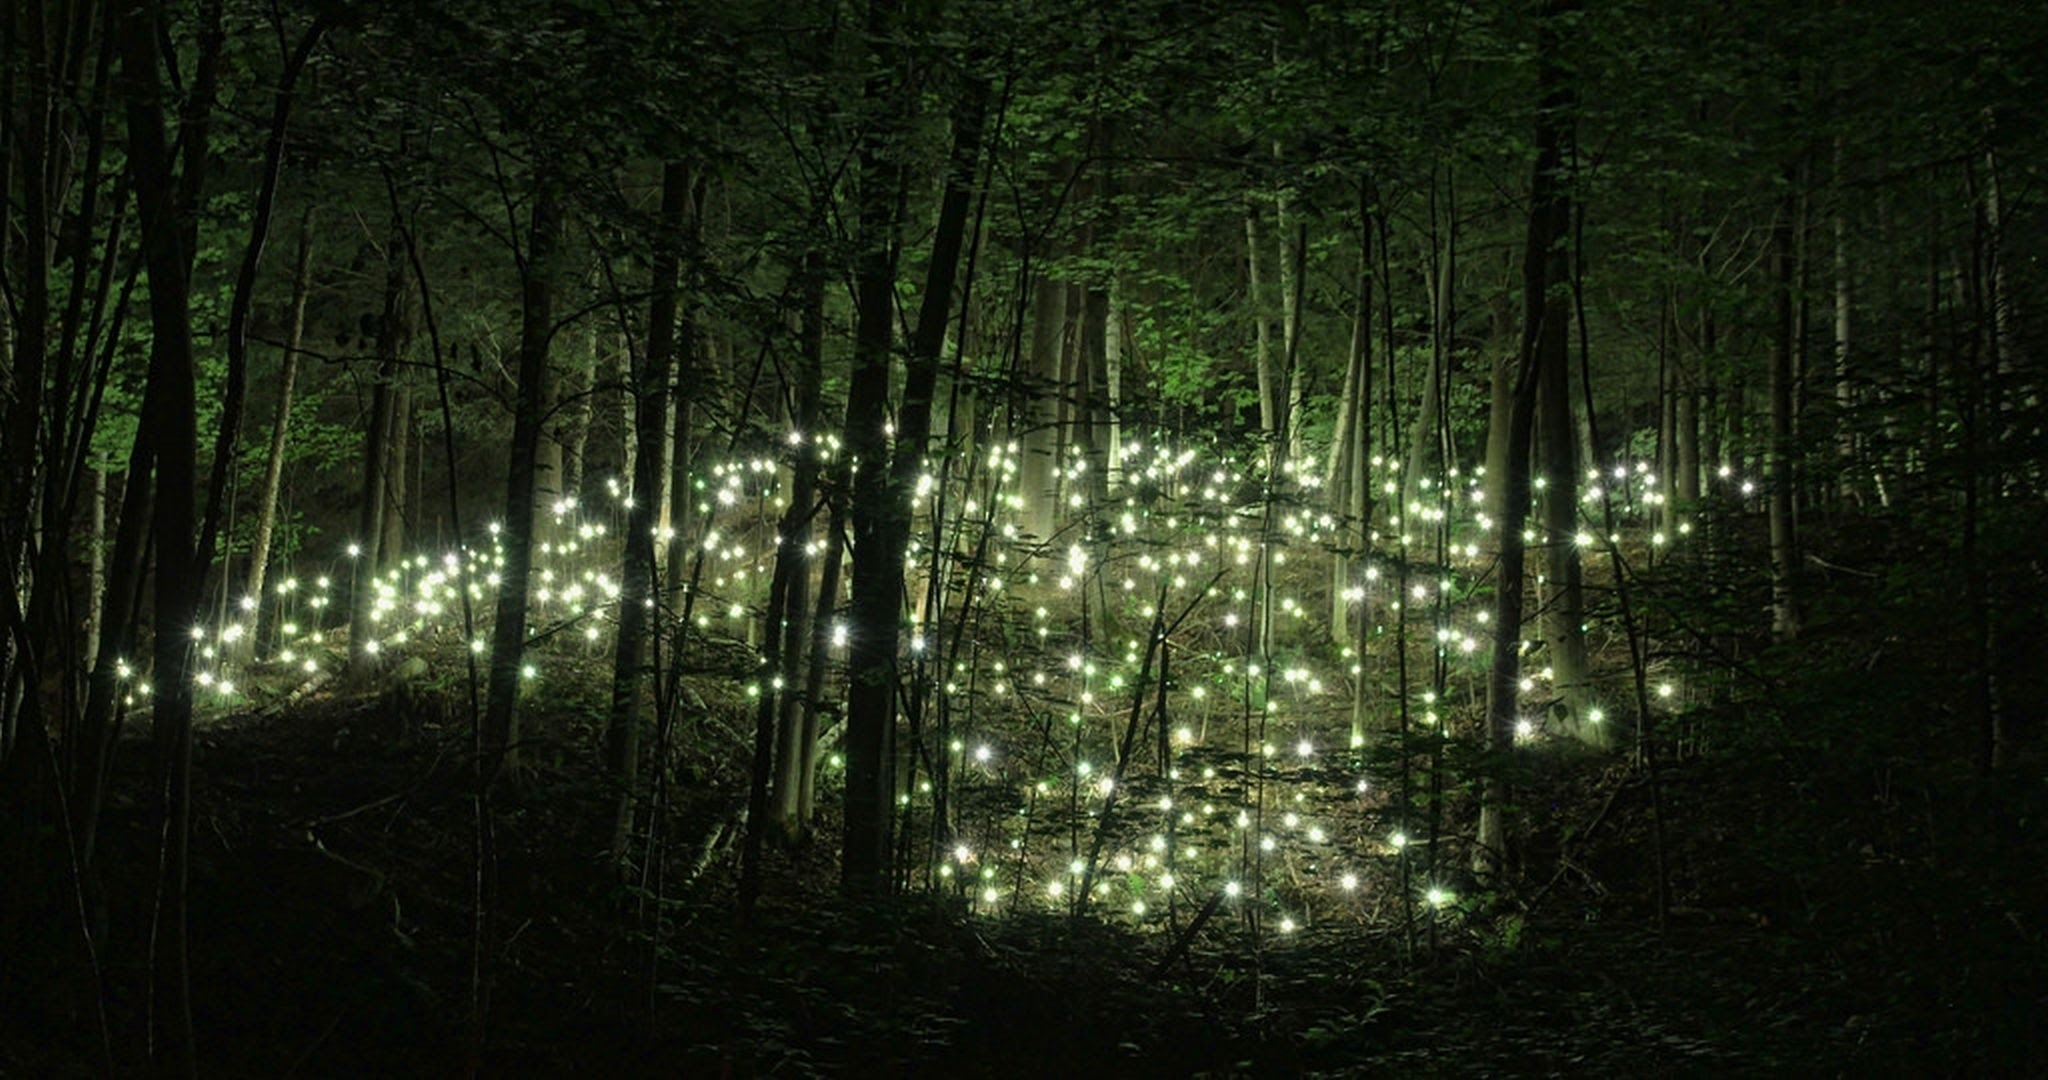 wandering in the enchanted forest: 8 hours of relaxation - sleep